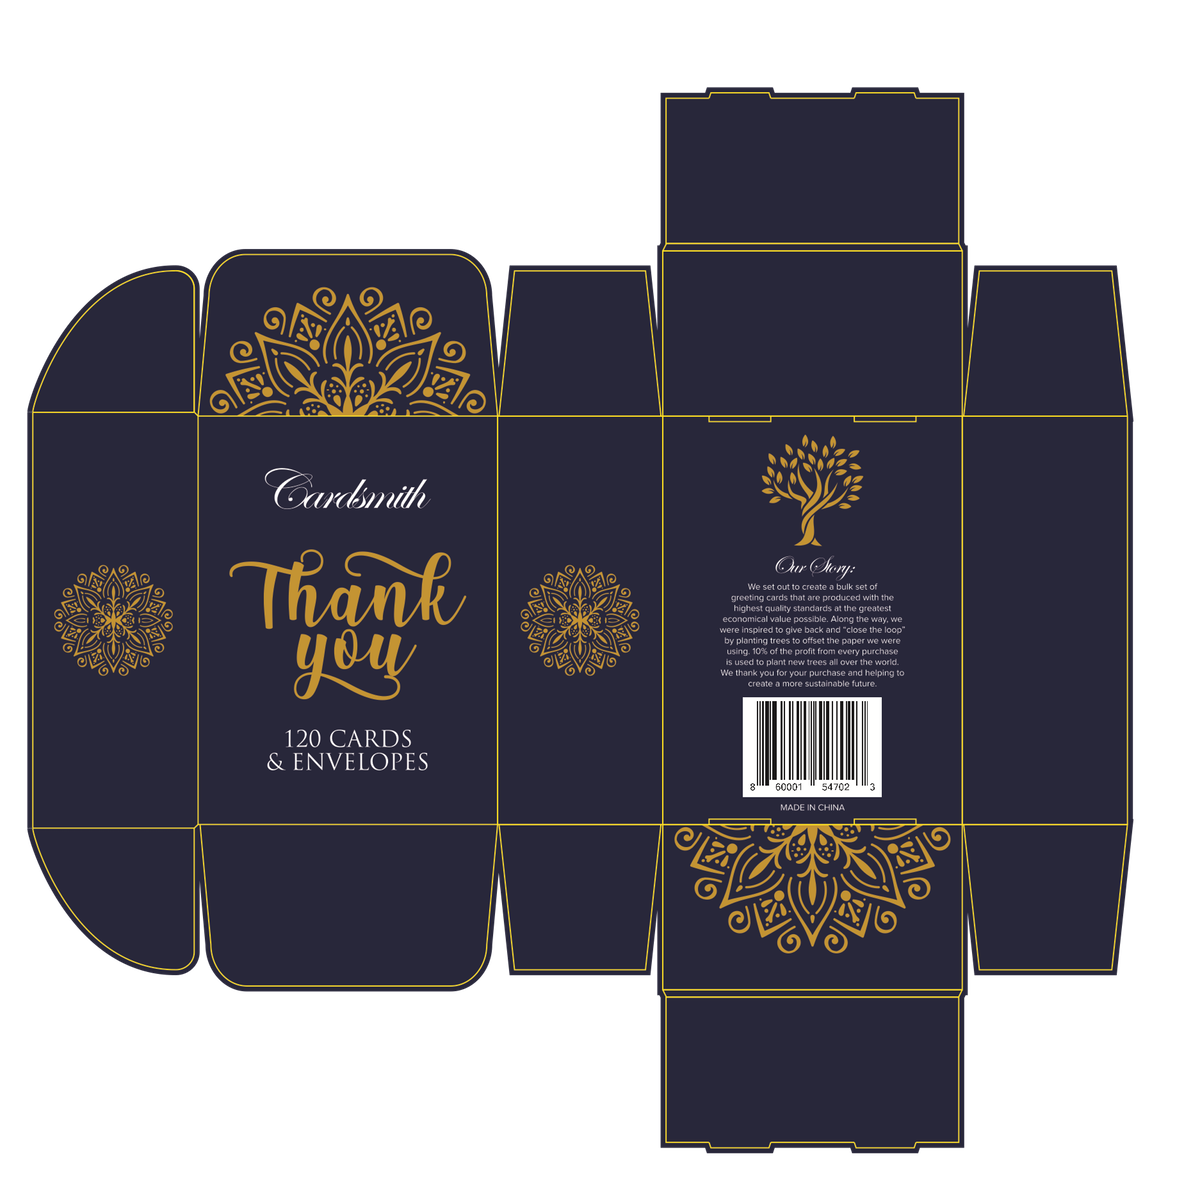 Box Design For Set of Thank You Cards